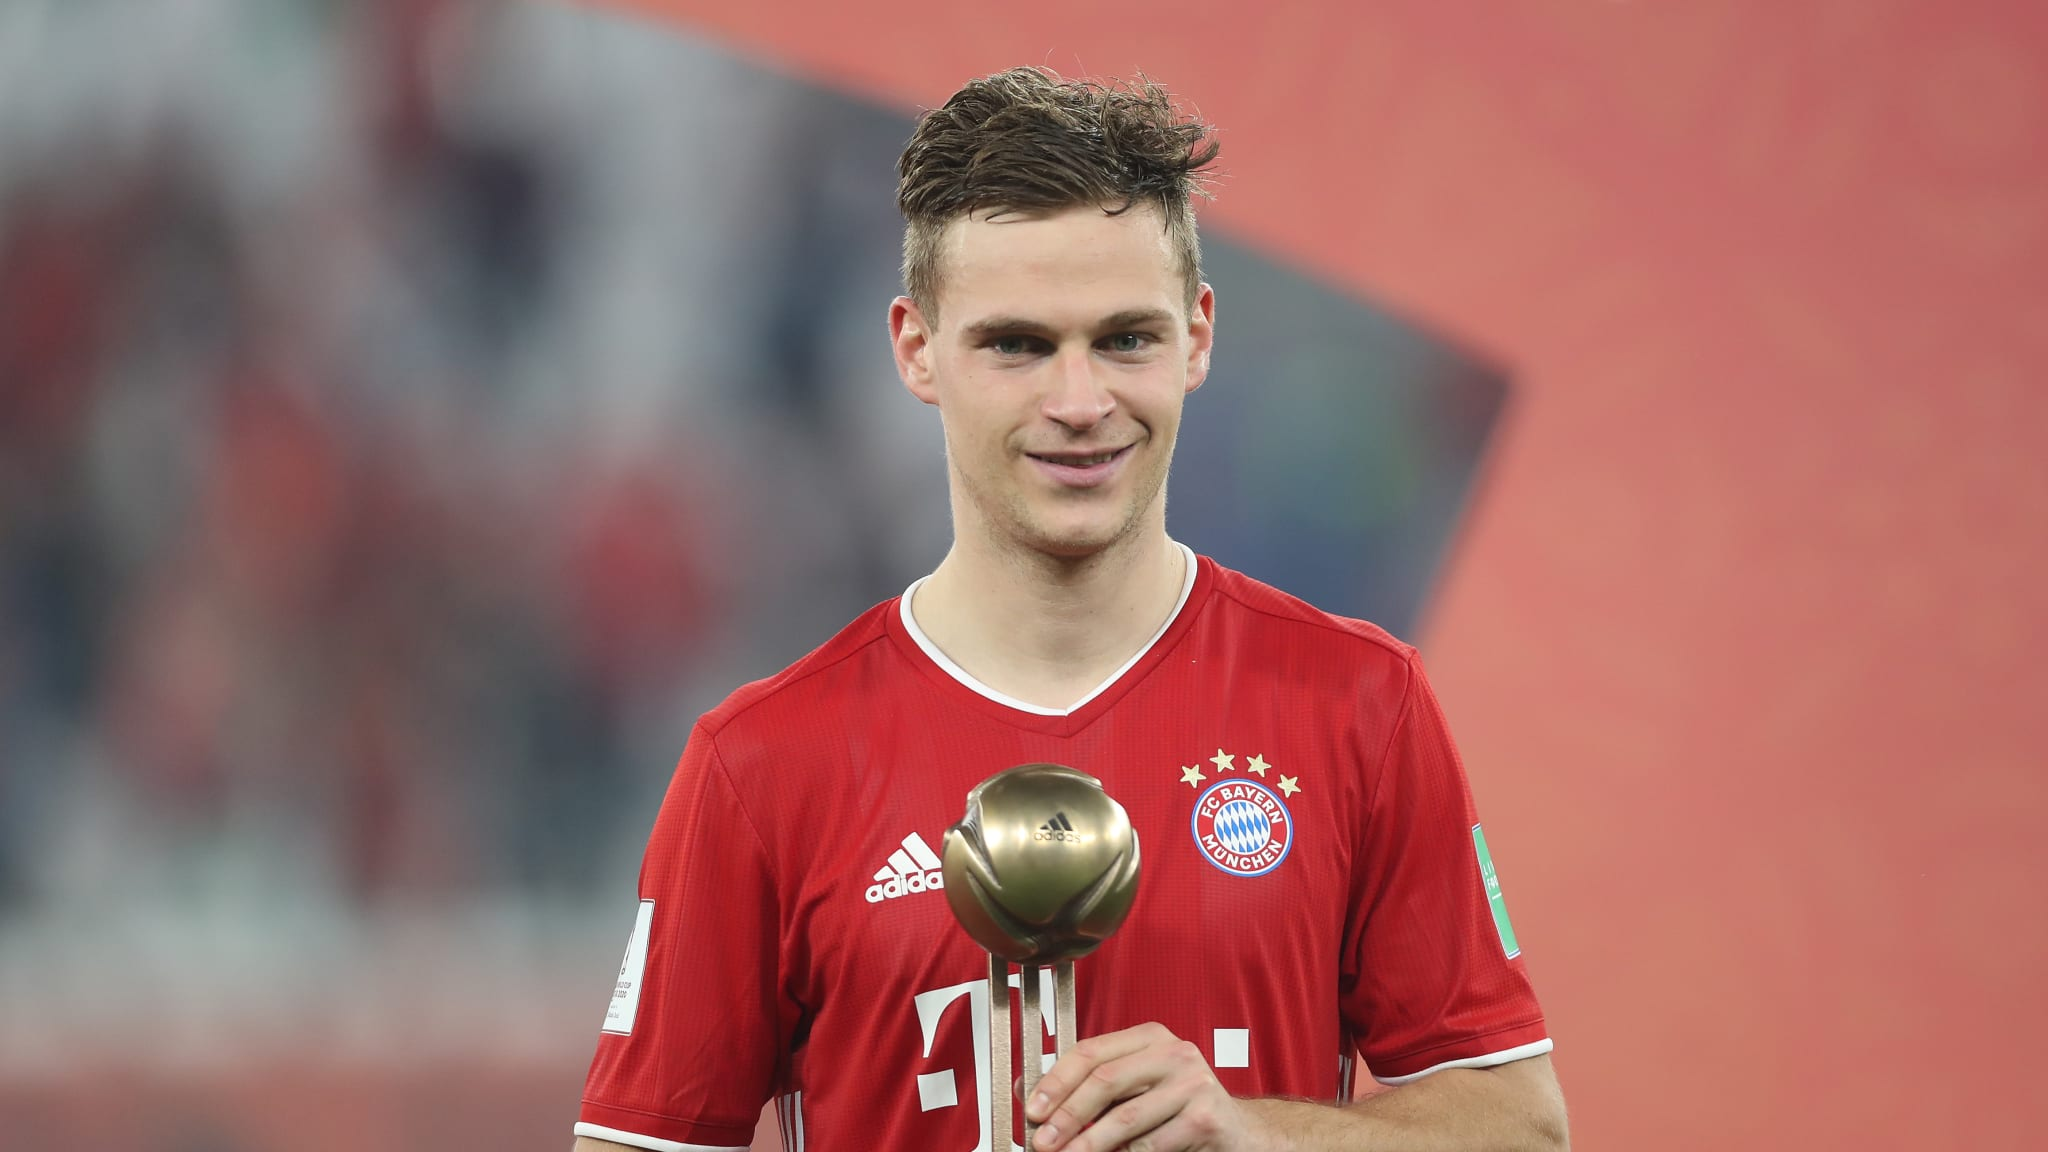 Joshua Kimmich of FC Bayern Muenchen poses with the FIFA Club World Cup Qatar 2020 adidas bronze ball trophy